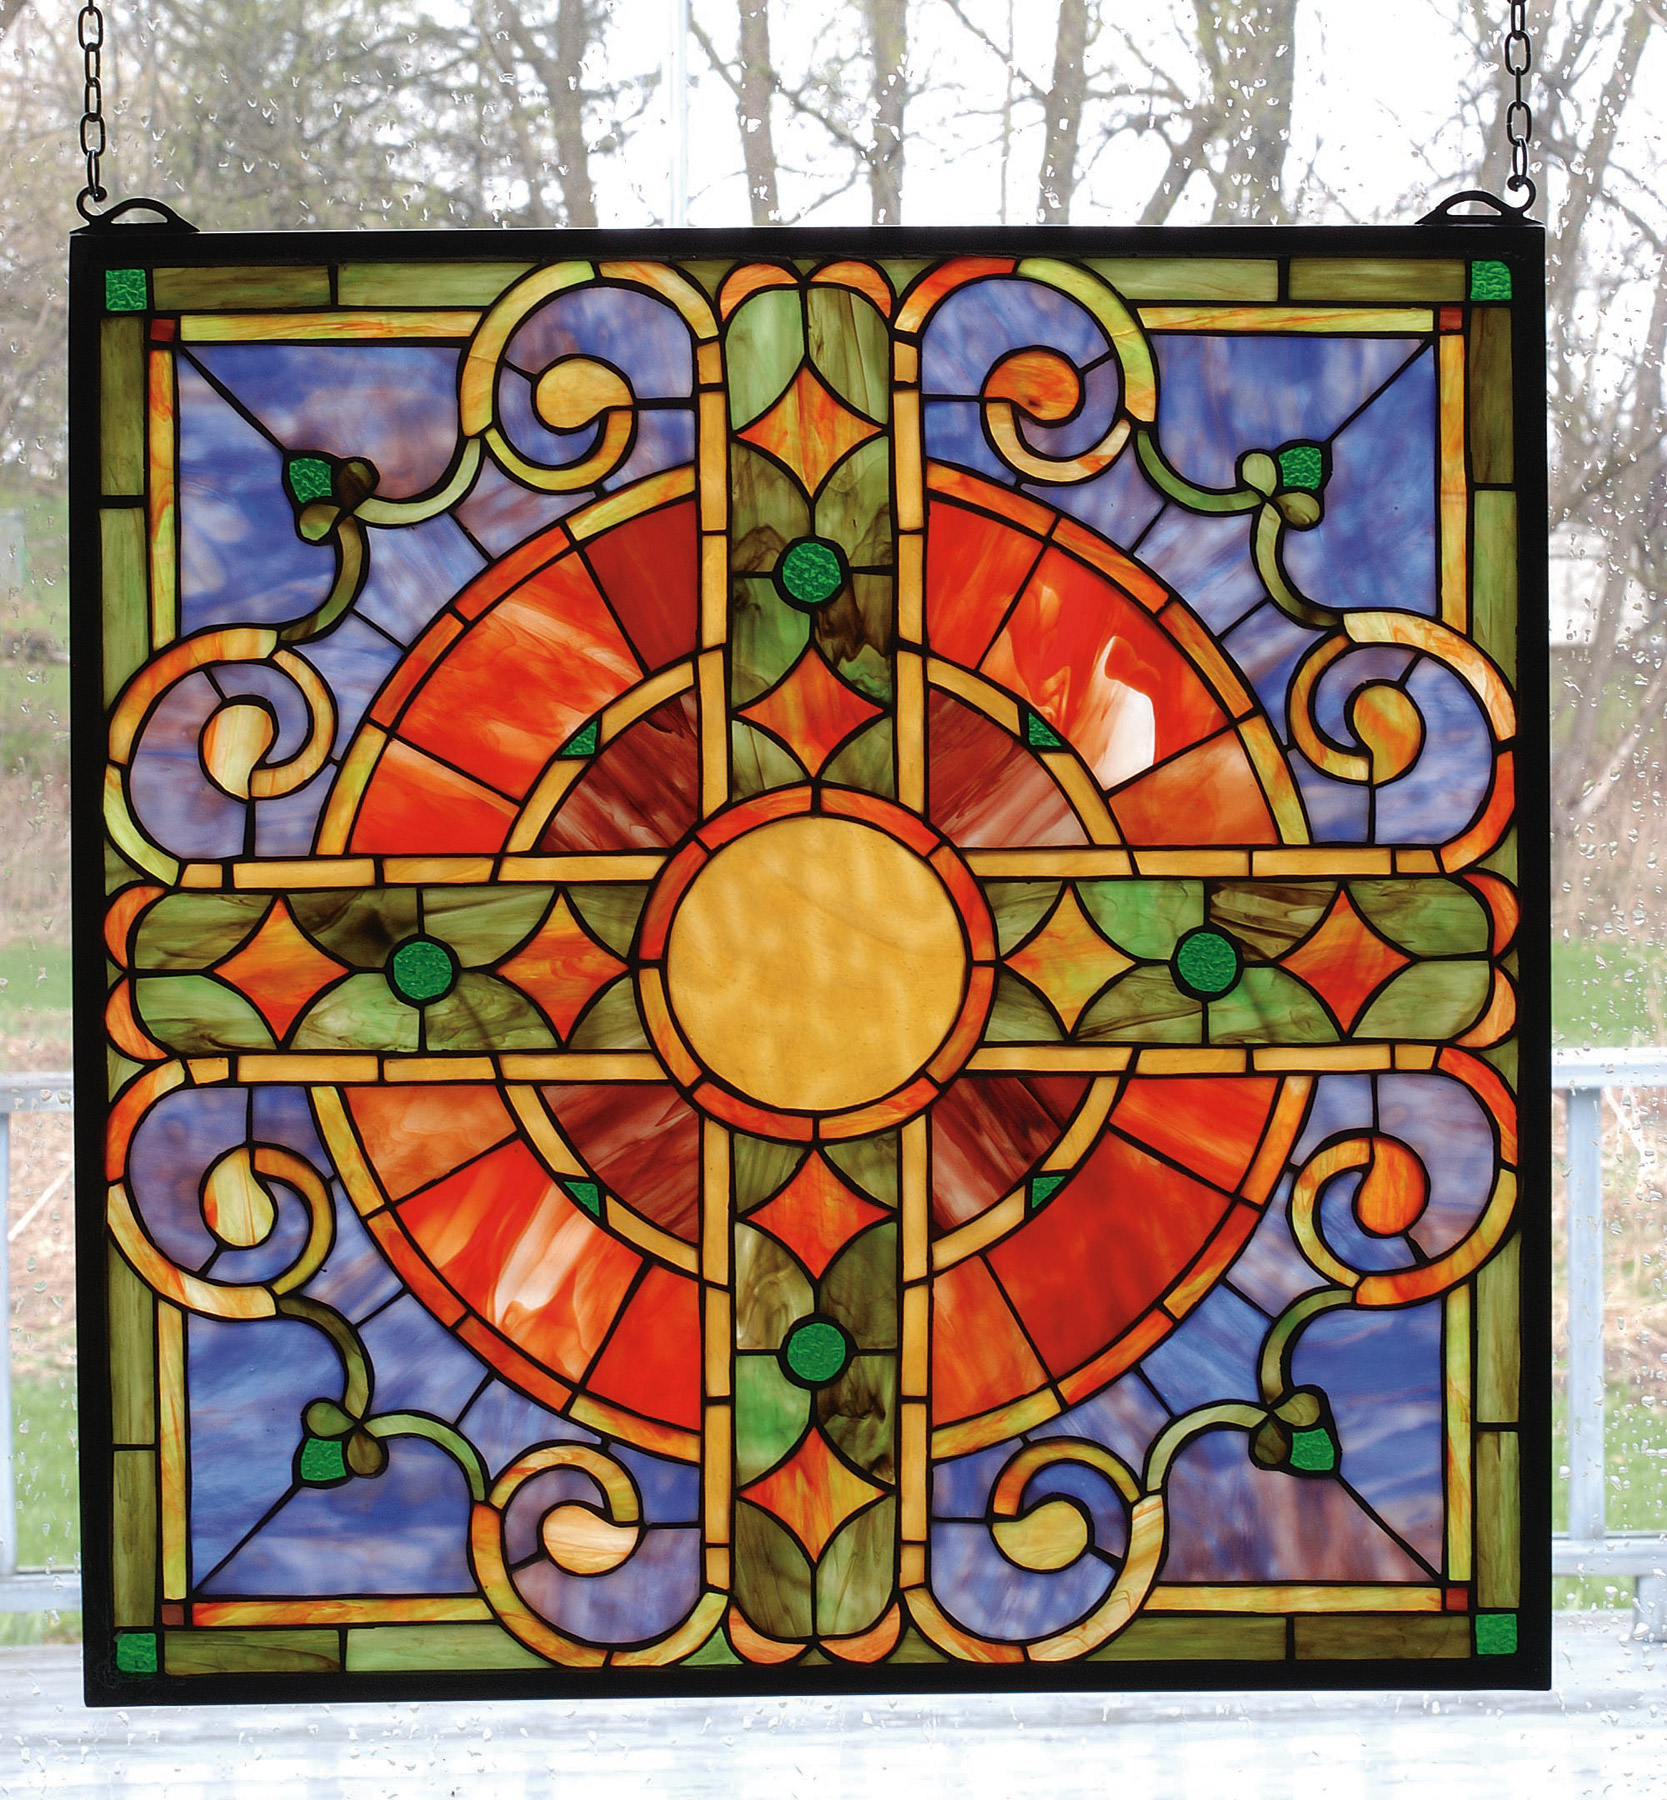 Simple Medieval Stained Glass Windows | www.pixshark.com ...